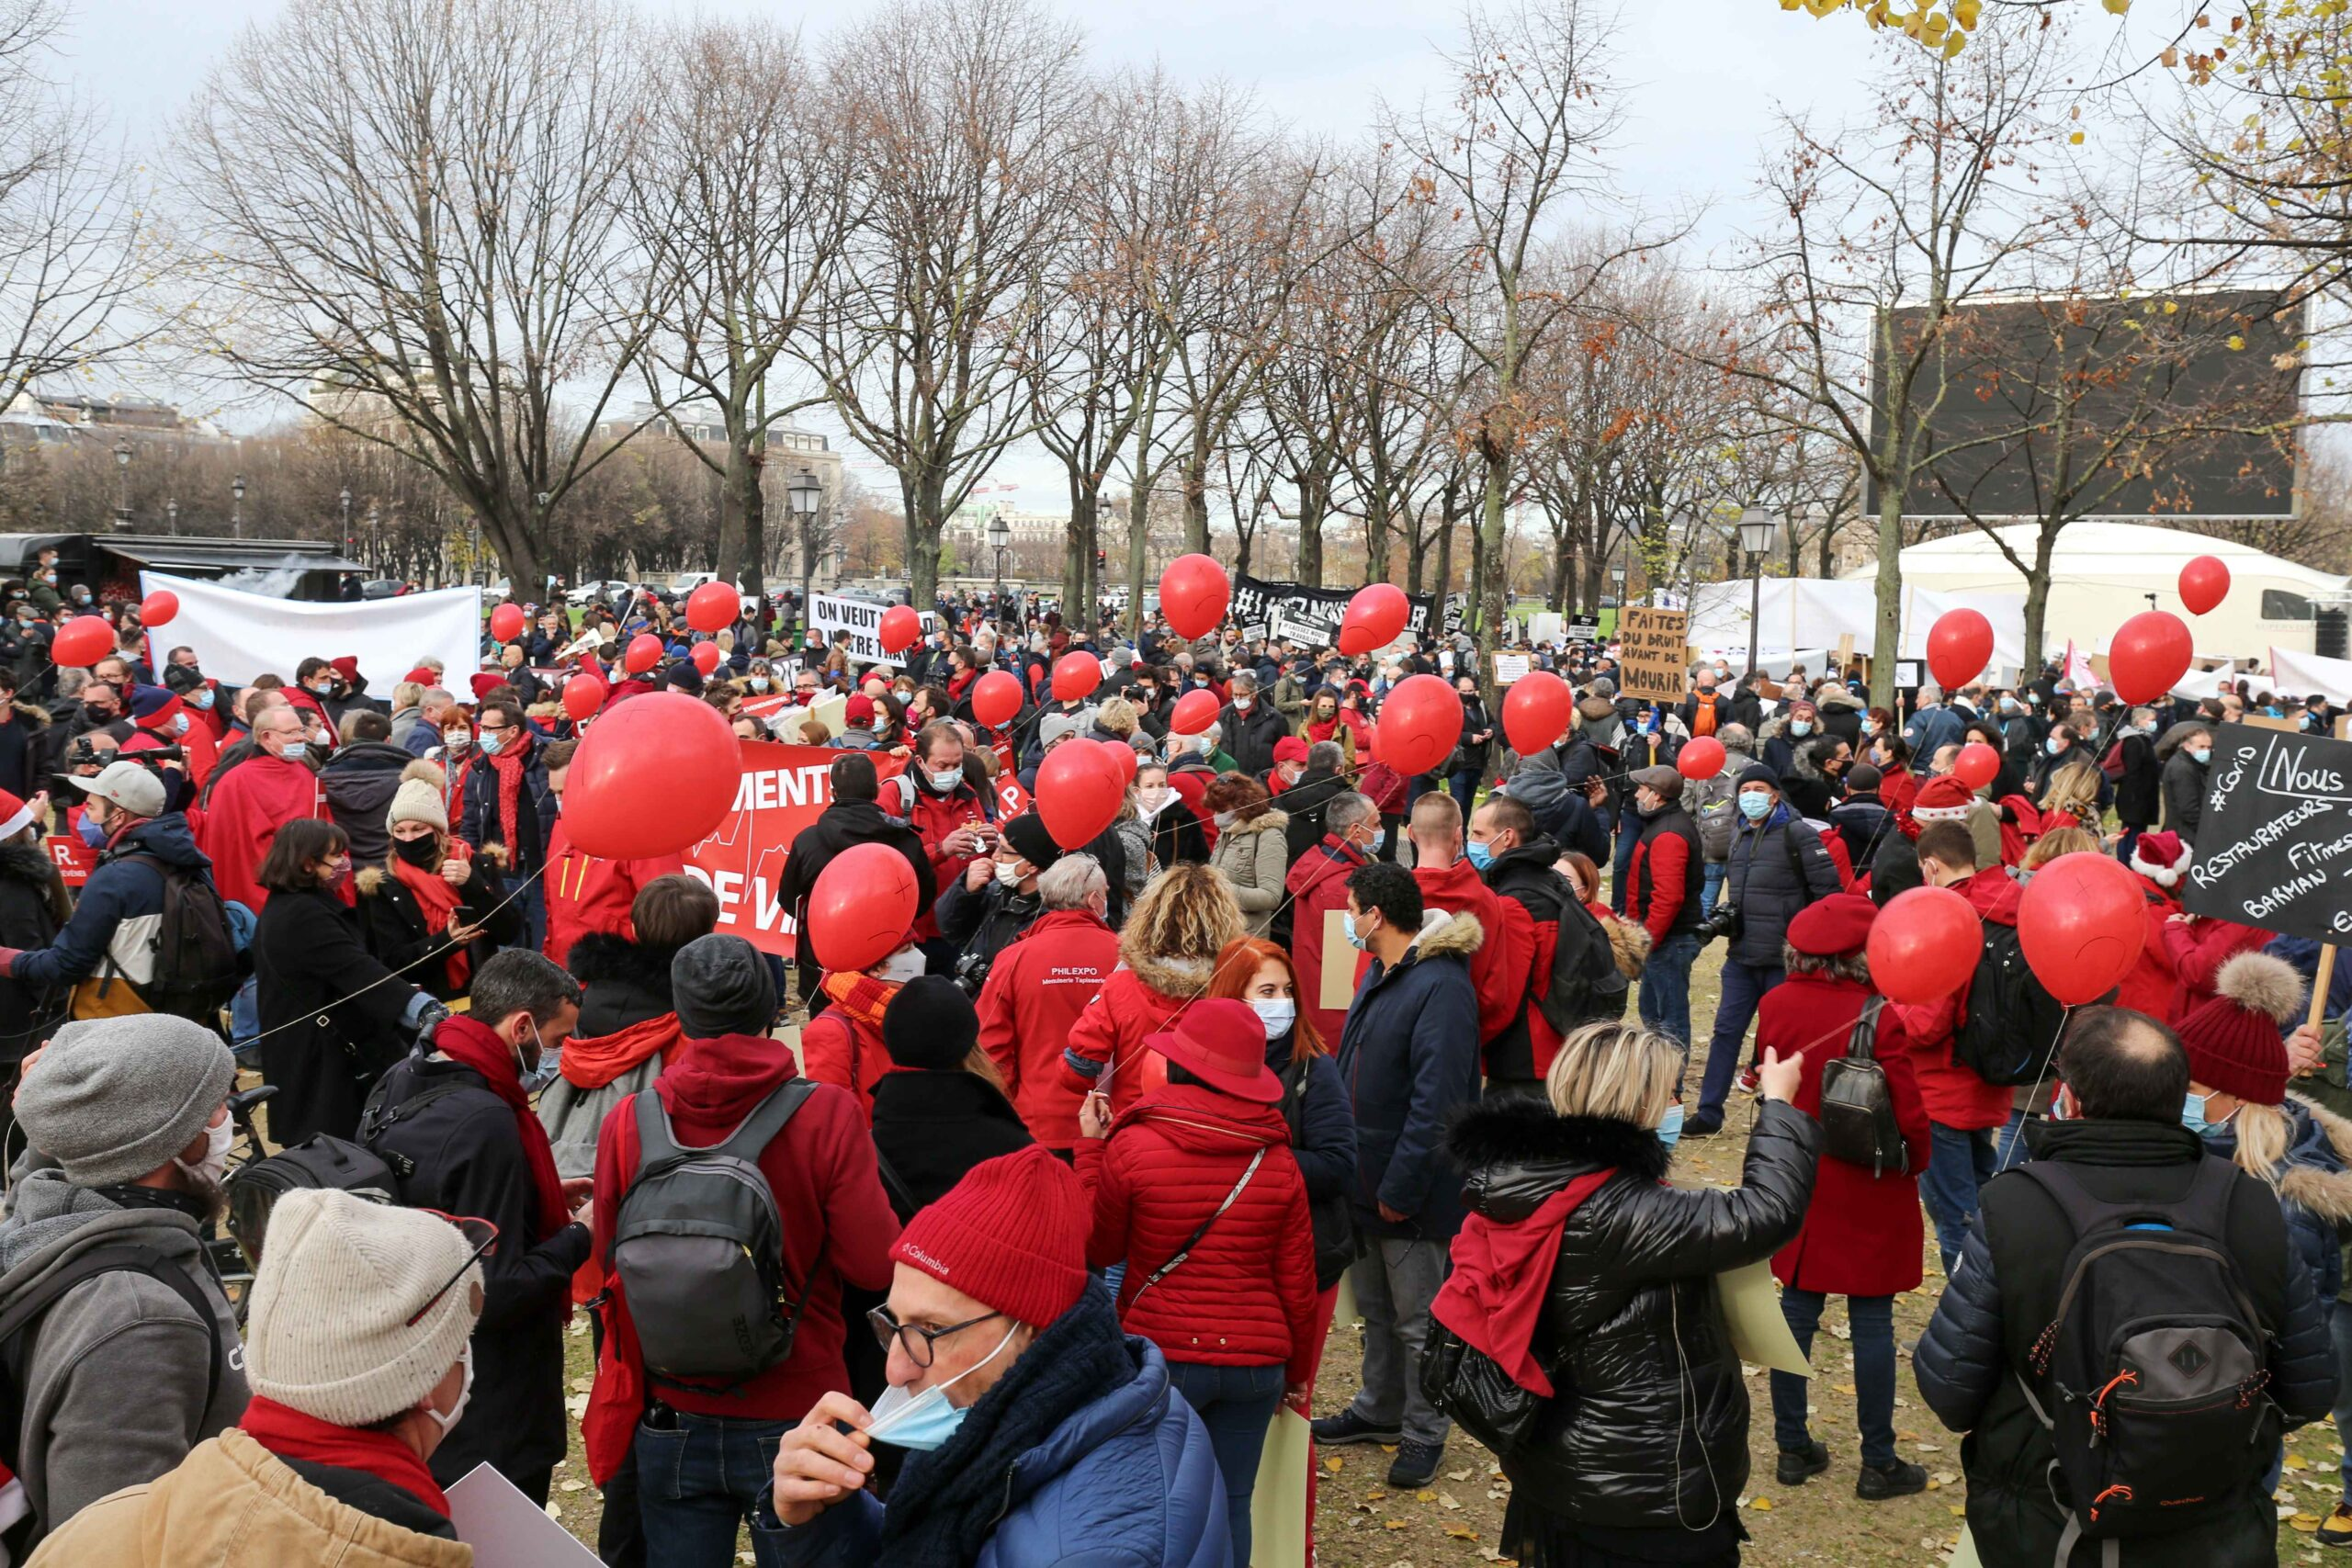 Protesters gather on the Invalides esplanade on December 14, 2020 in Paris during a demonstration of hotel and restaurant owners as well as tourism professionals to demand their businesses to reopen amidst the Covid-19 pandemic, caused by the novel coronav